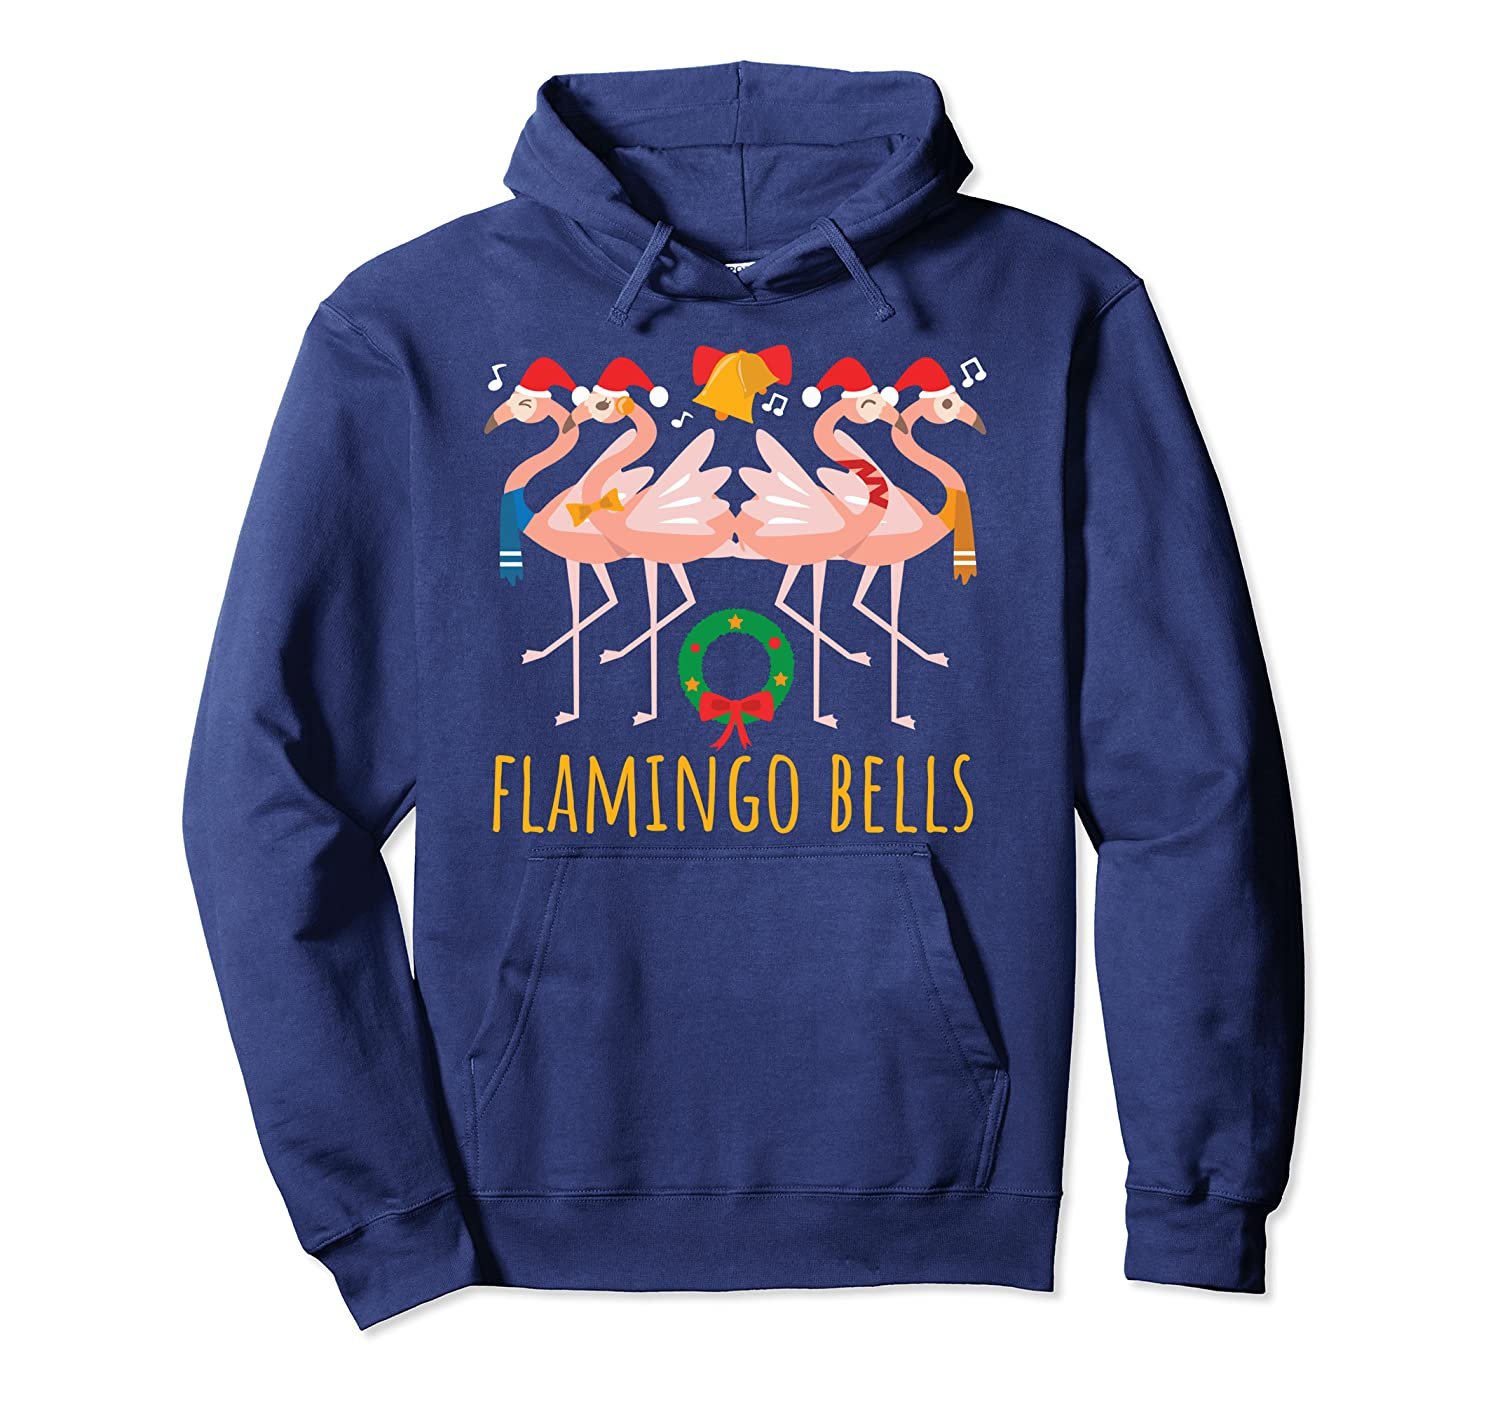 flamingo bells cute funny mom christmas gift pullover hoodie 1 - Classic Shop